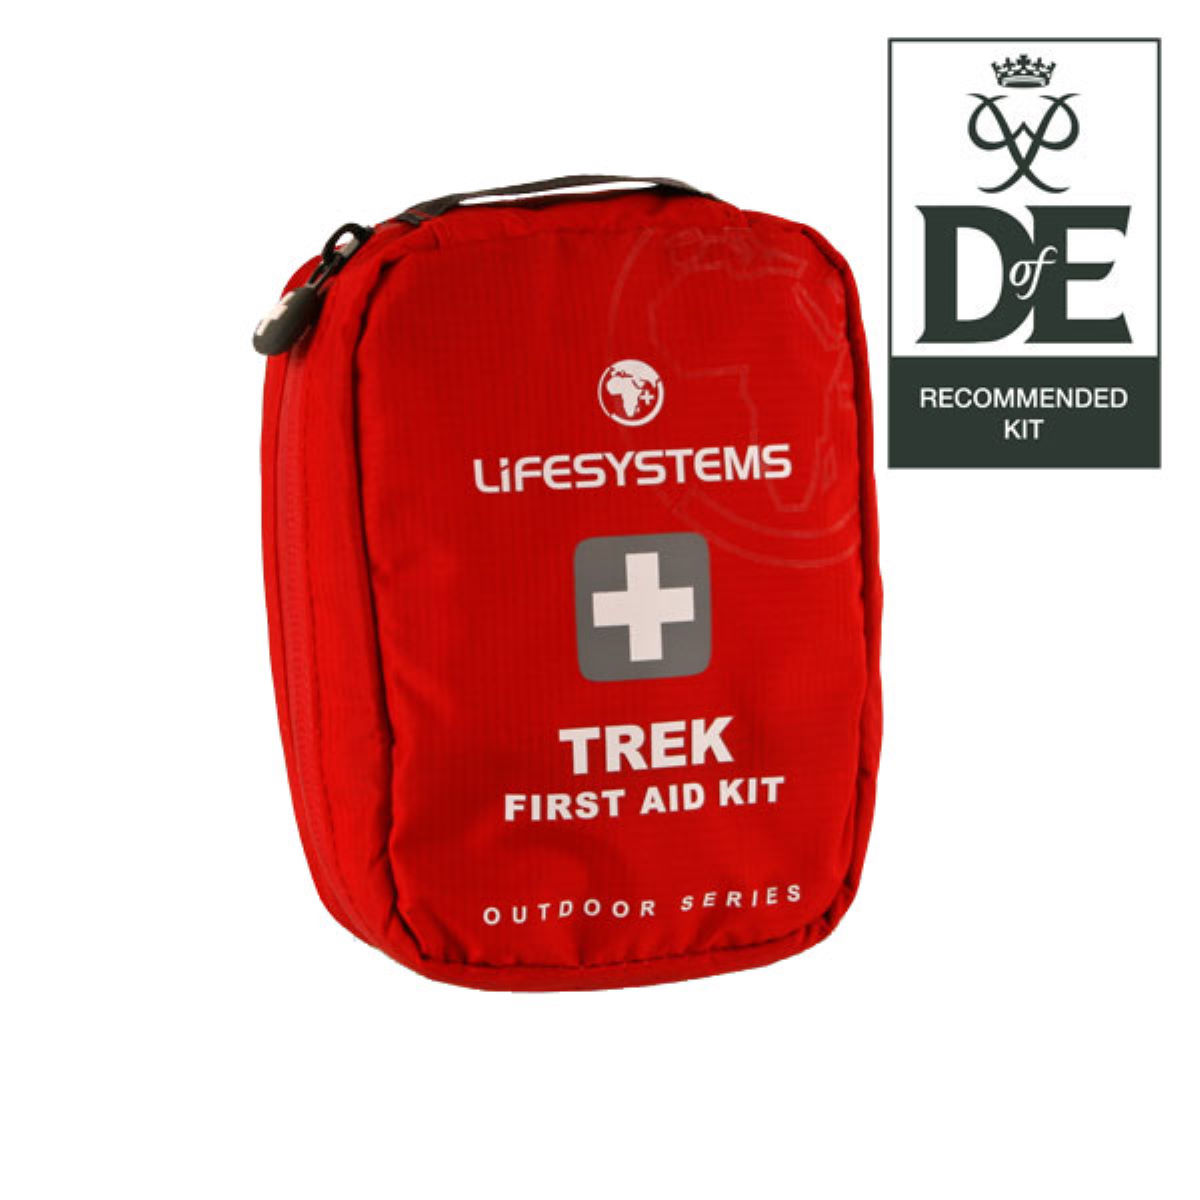 Lifesystems Trek First Aid Kit   First Aid Kits